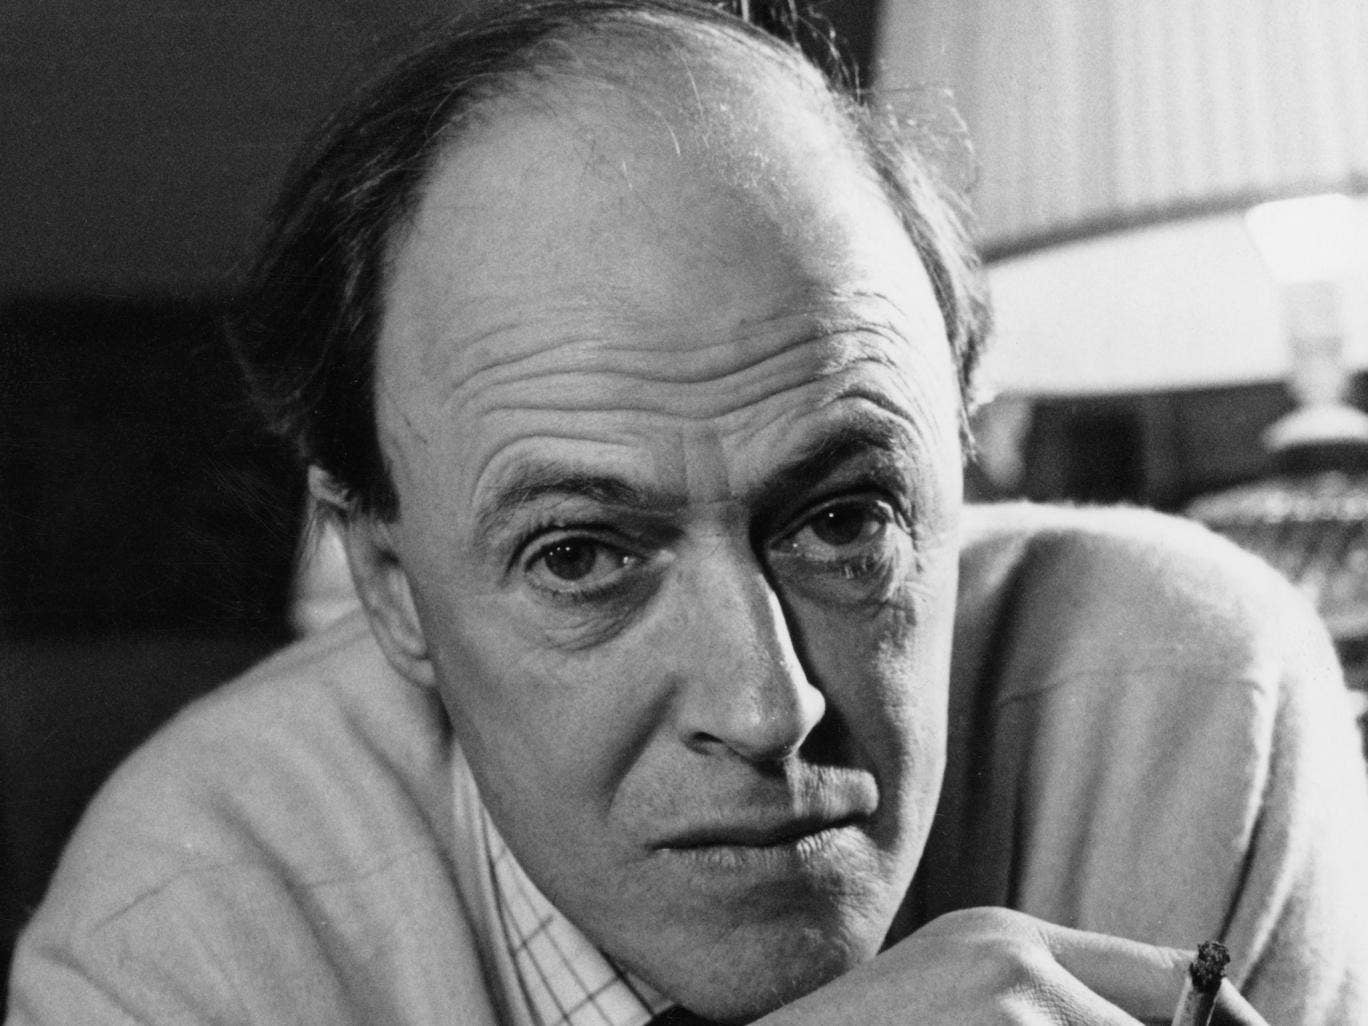 British writer Roald Dahl (1916 - 1990), 11th December 1971.